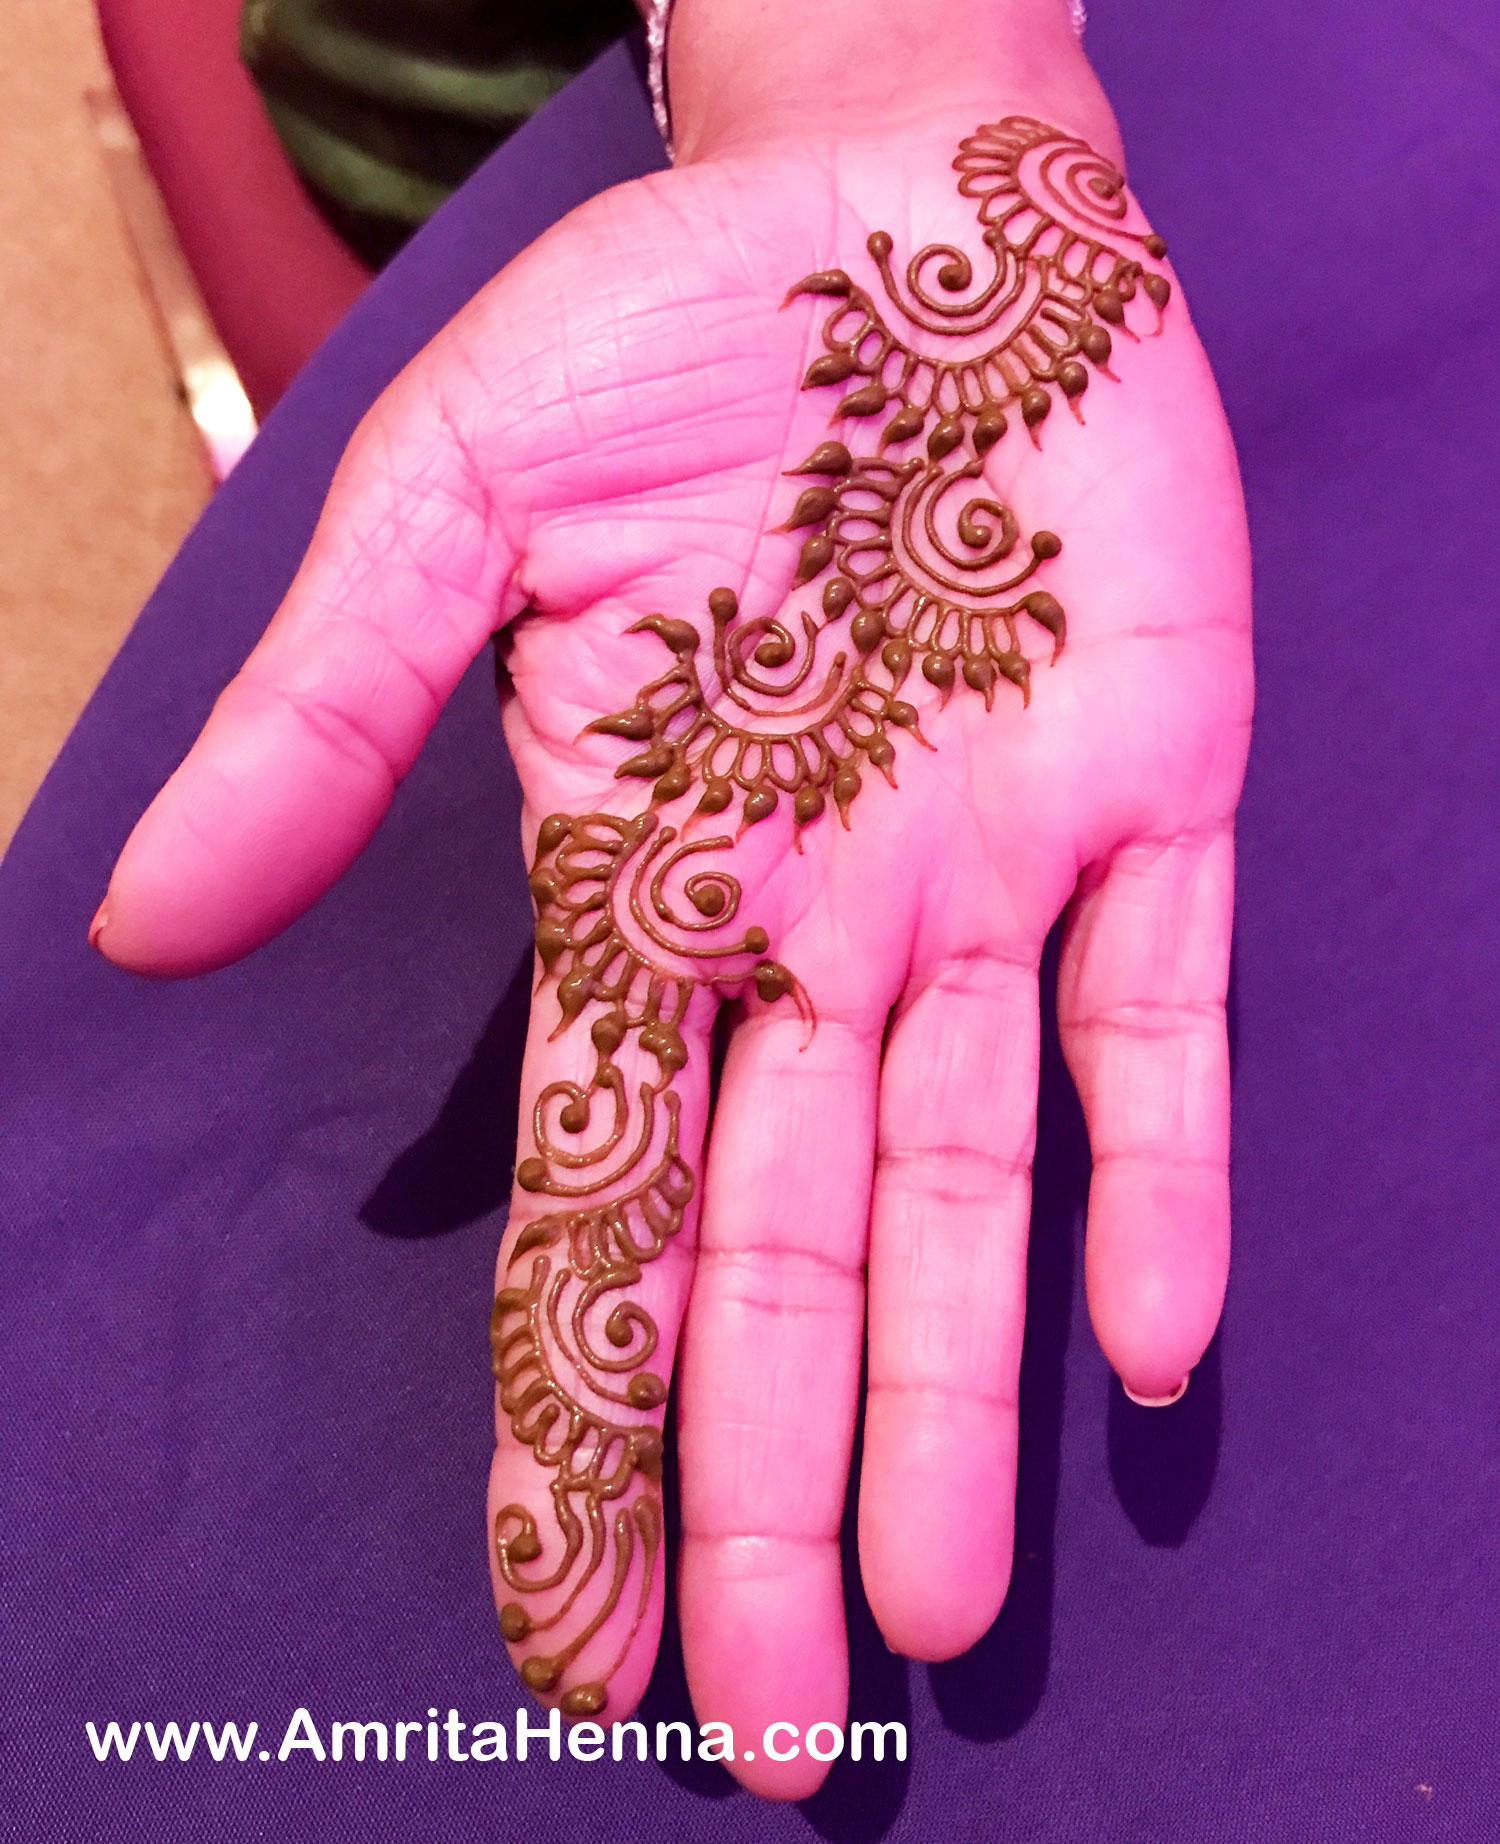 Top 5 Henna Designs for Beginners - Best 5 Latest Mehndi Designs for New Artists - Most Popular Mehendi Designs for Learners - Top 5 Simple and Easy Henna Designs for Starters - New 5 Easy and Quick Best Mehendi Designs